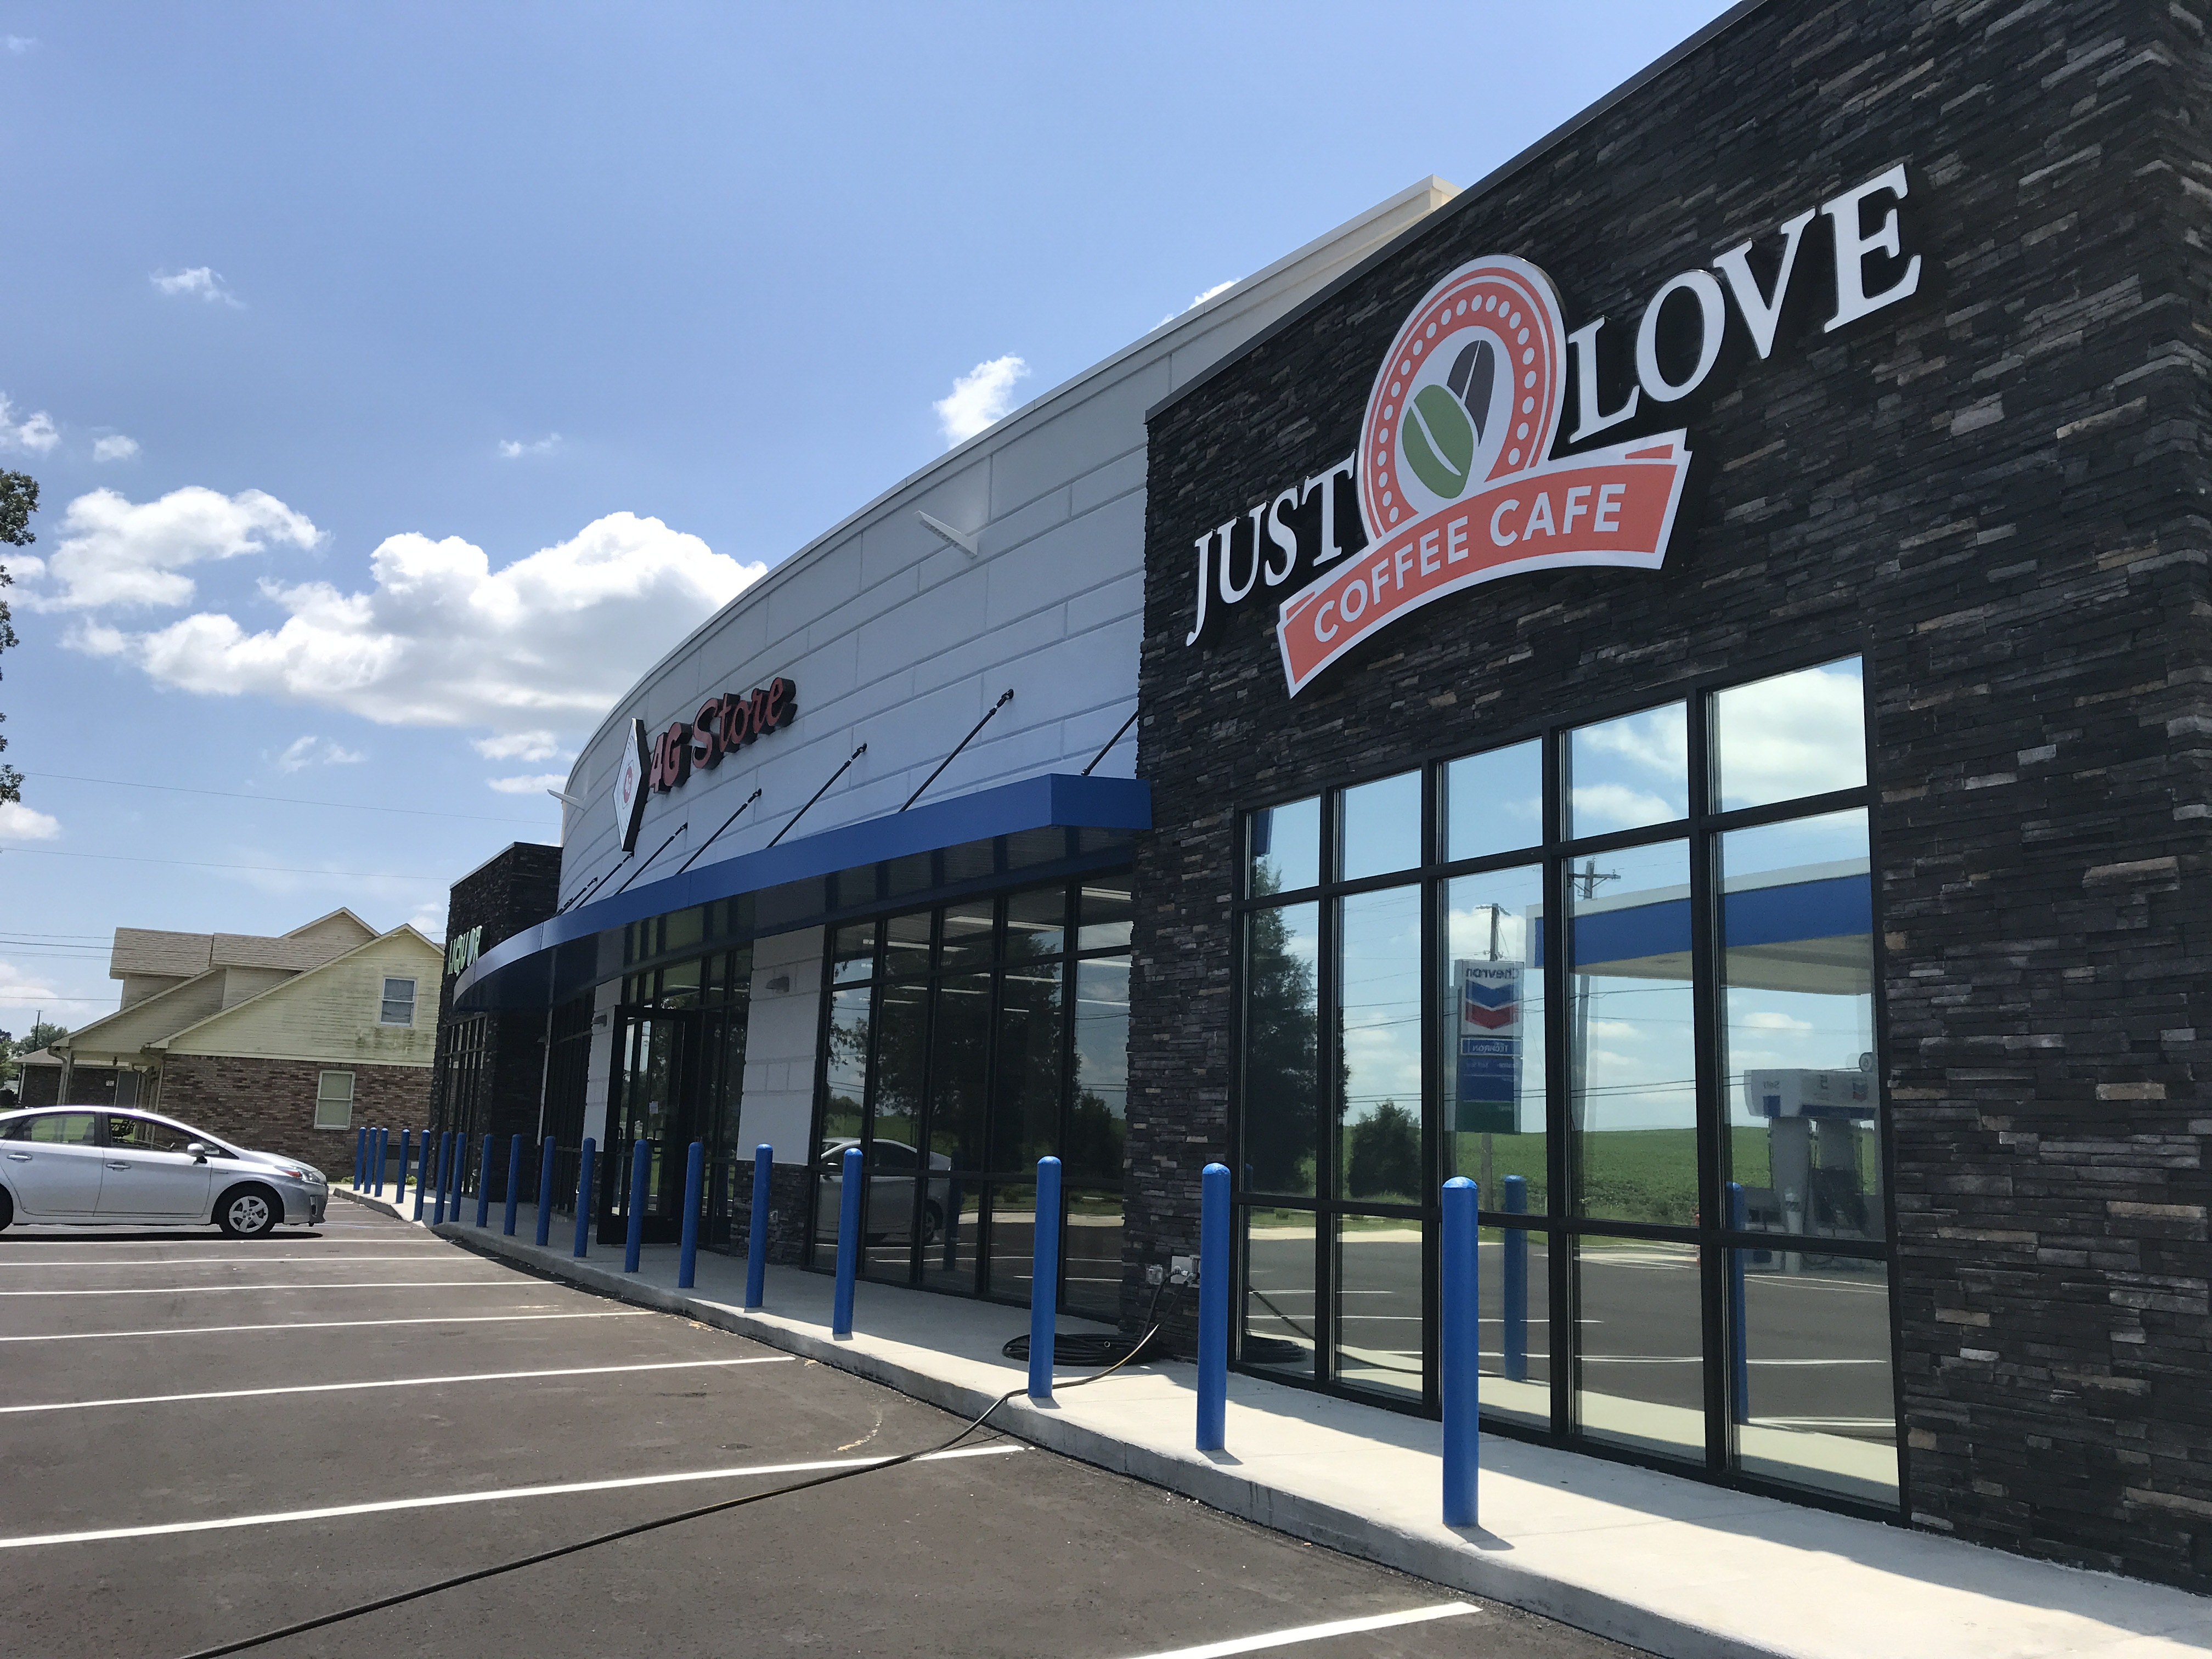 Just Love Coffee Cafe - Florence AL - Florence, AL 35634 - (256)275-7333 | ShowMeLocal.com